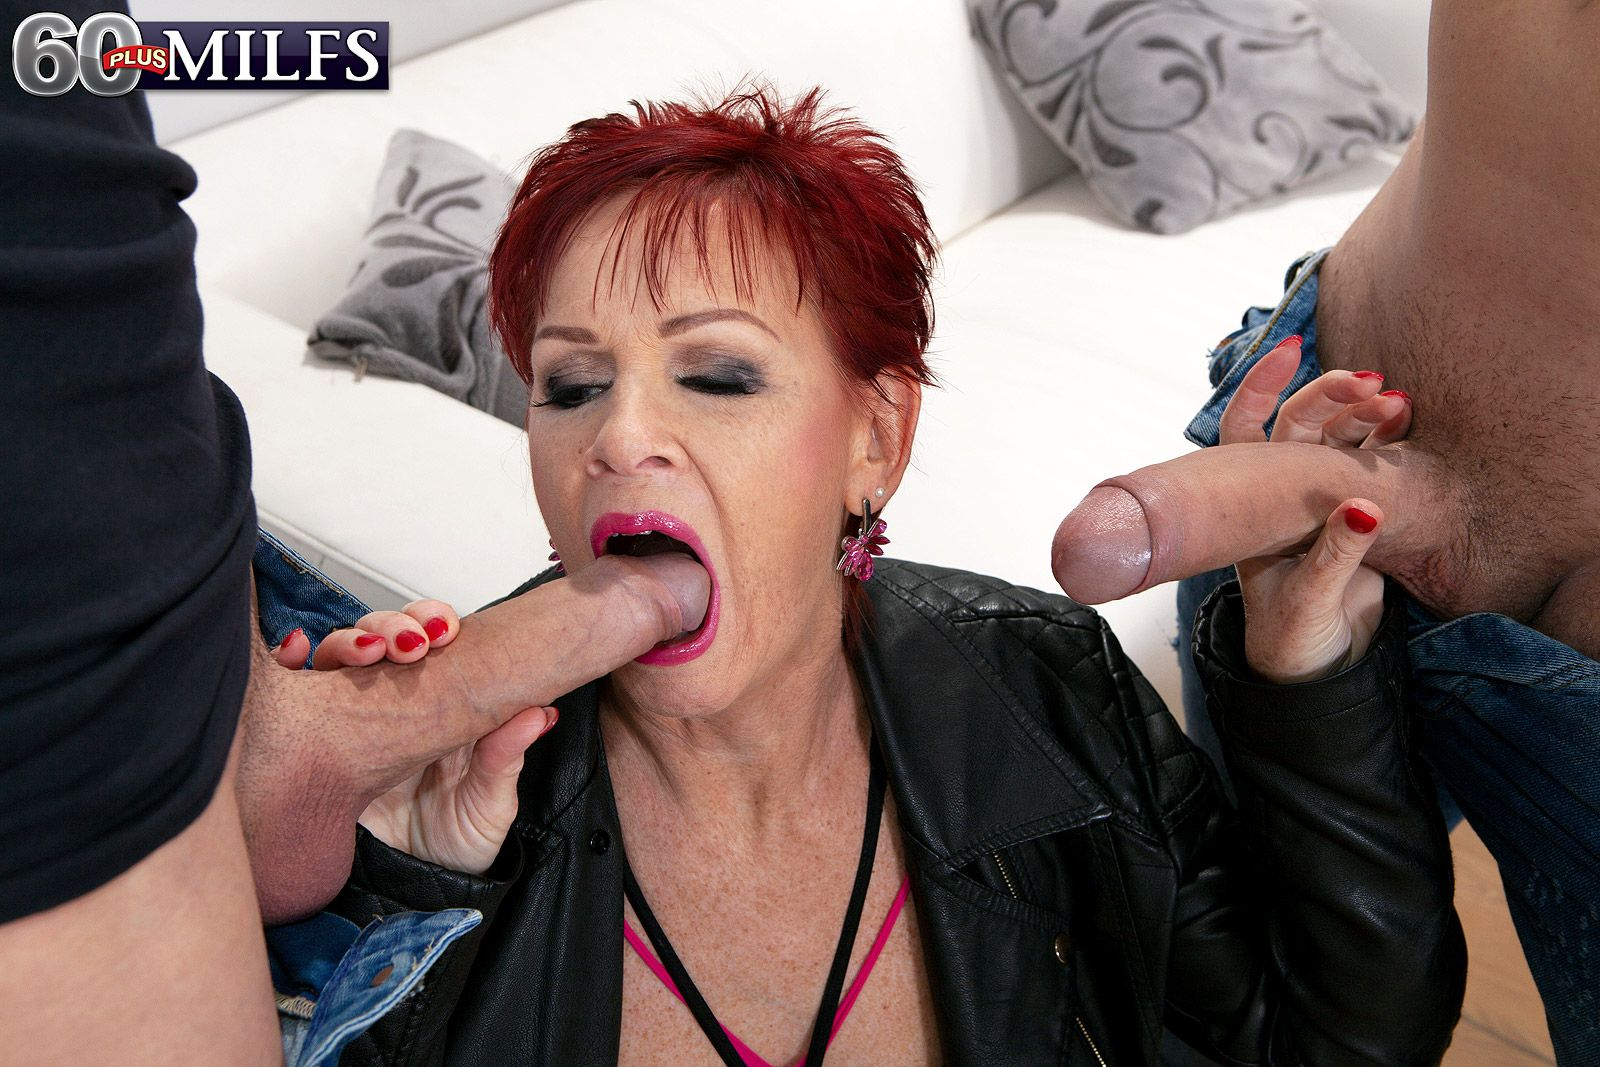 Redhad MILF Over 60 Caroline Hamsel picks up a couple of boys for an MMF fuck